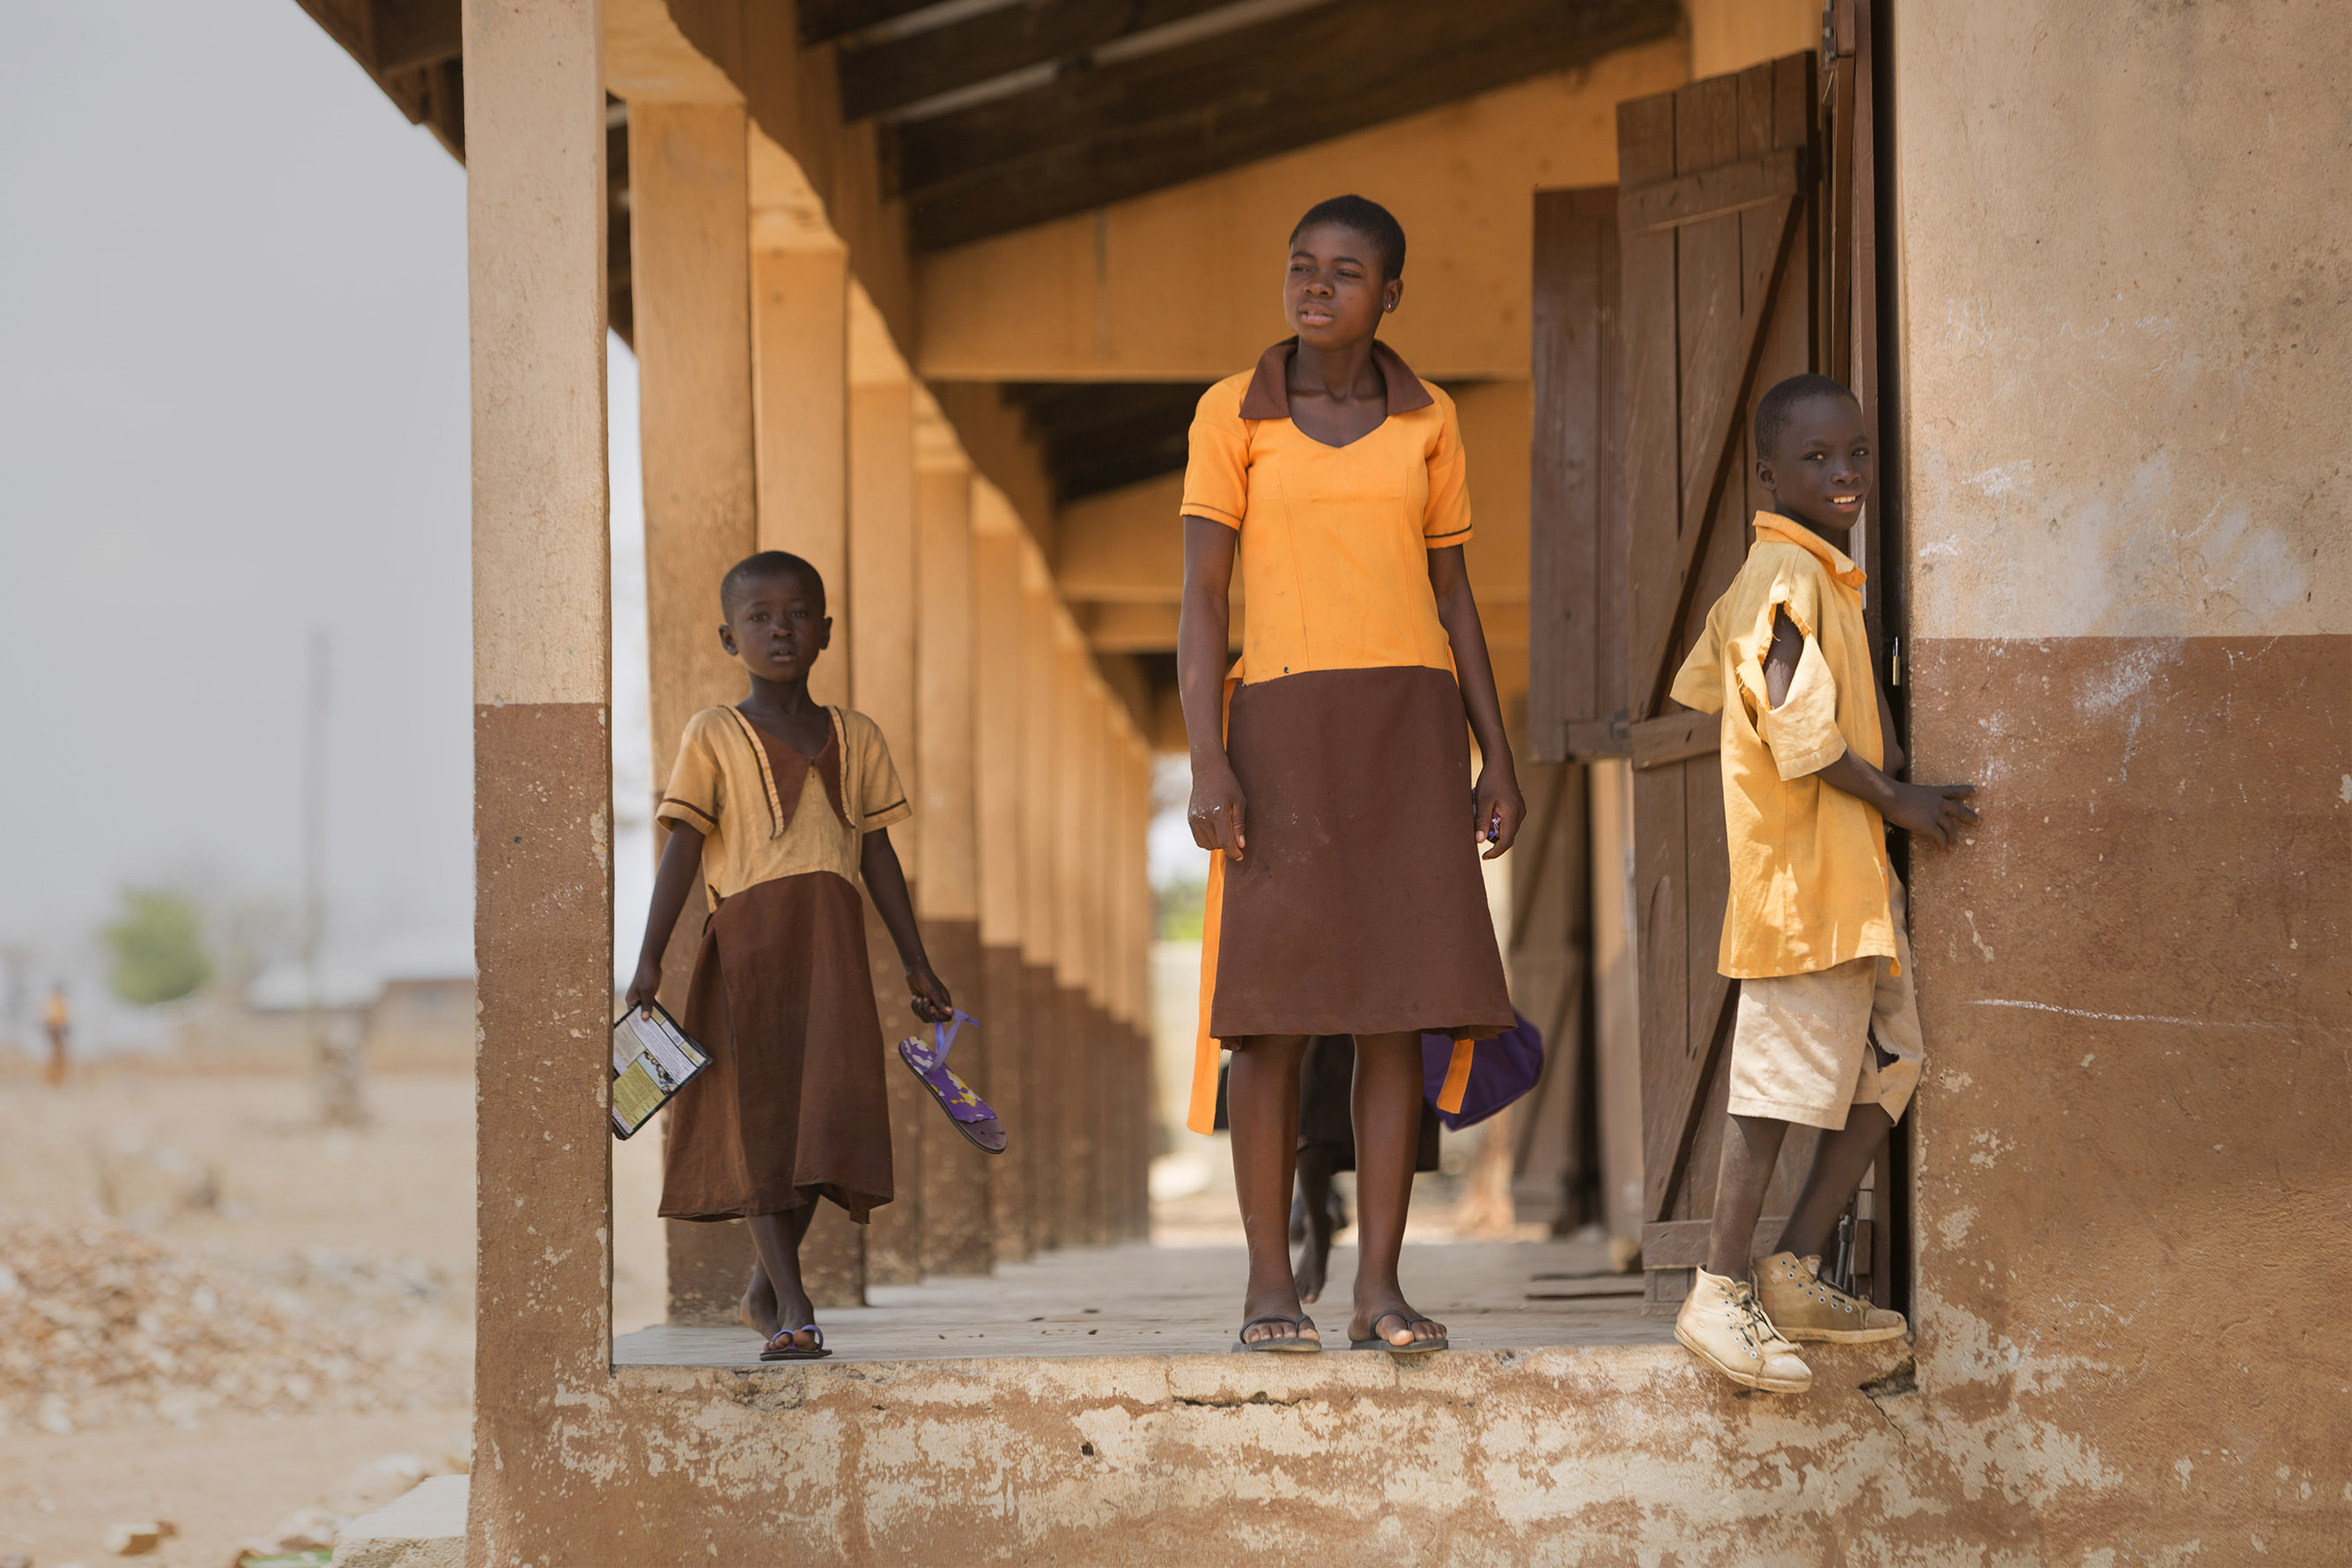 The impact of climate change is affecting the education system in Ghana. The ongoing severe and extreme weather patterns affecting Ghana's regions are challenging the infrastructure of schools. Photo by Jake Lyell for CRS